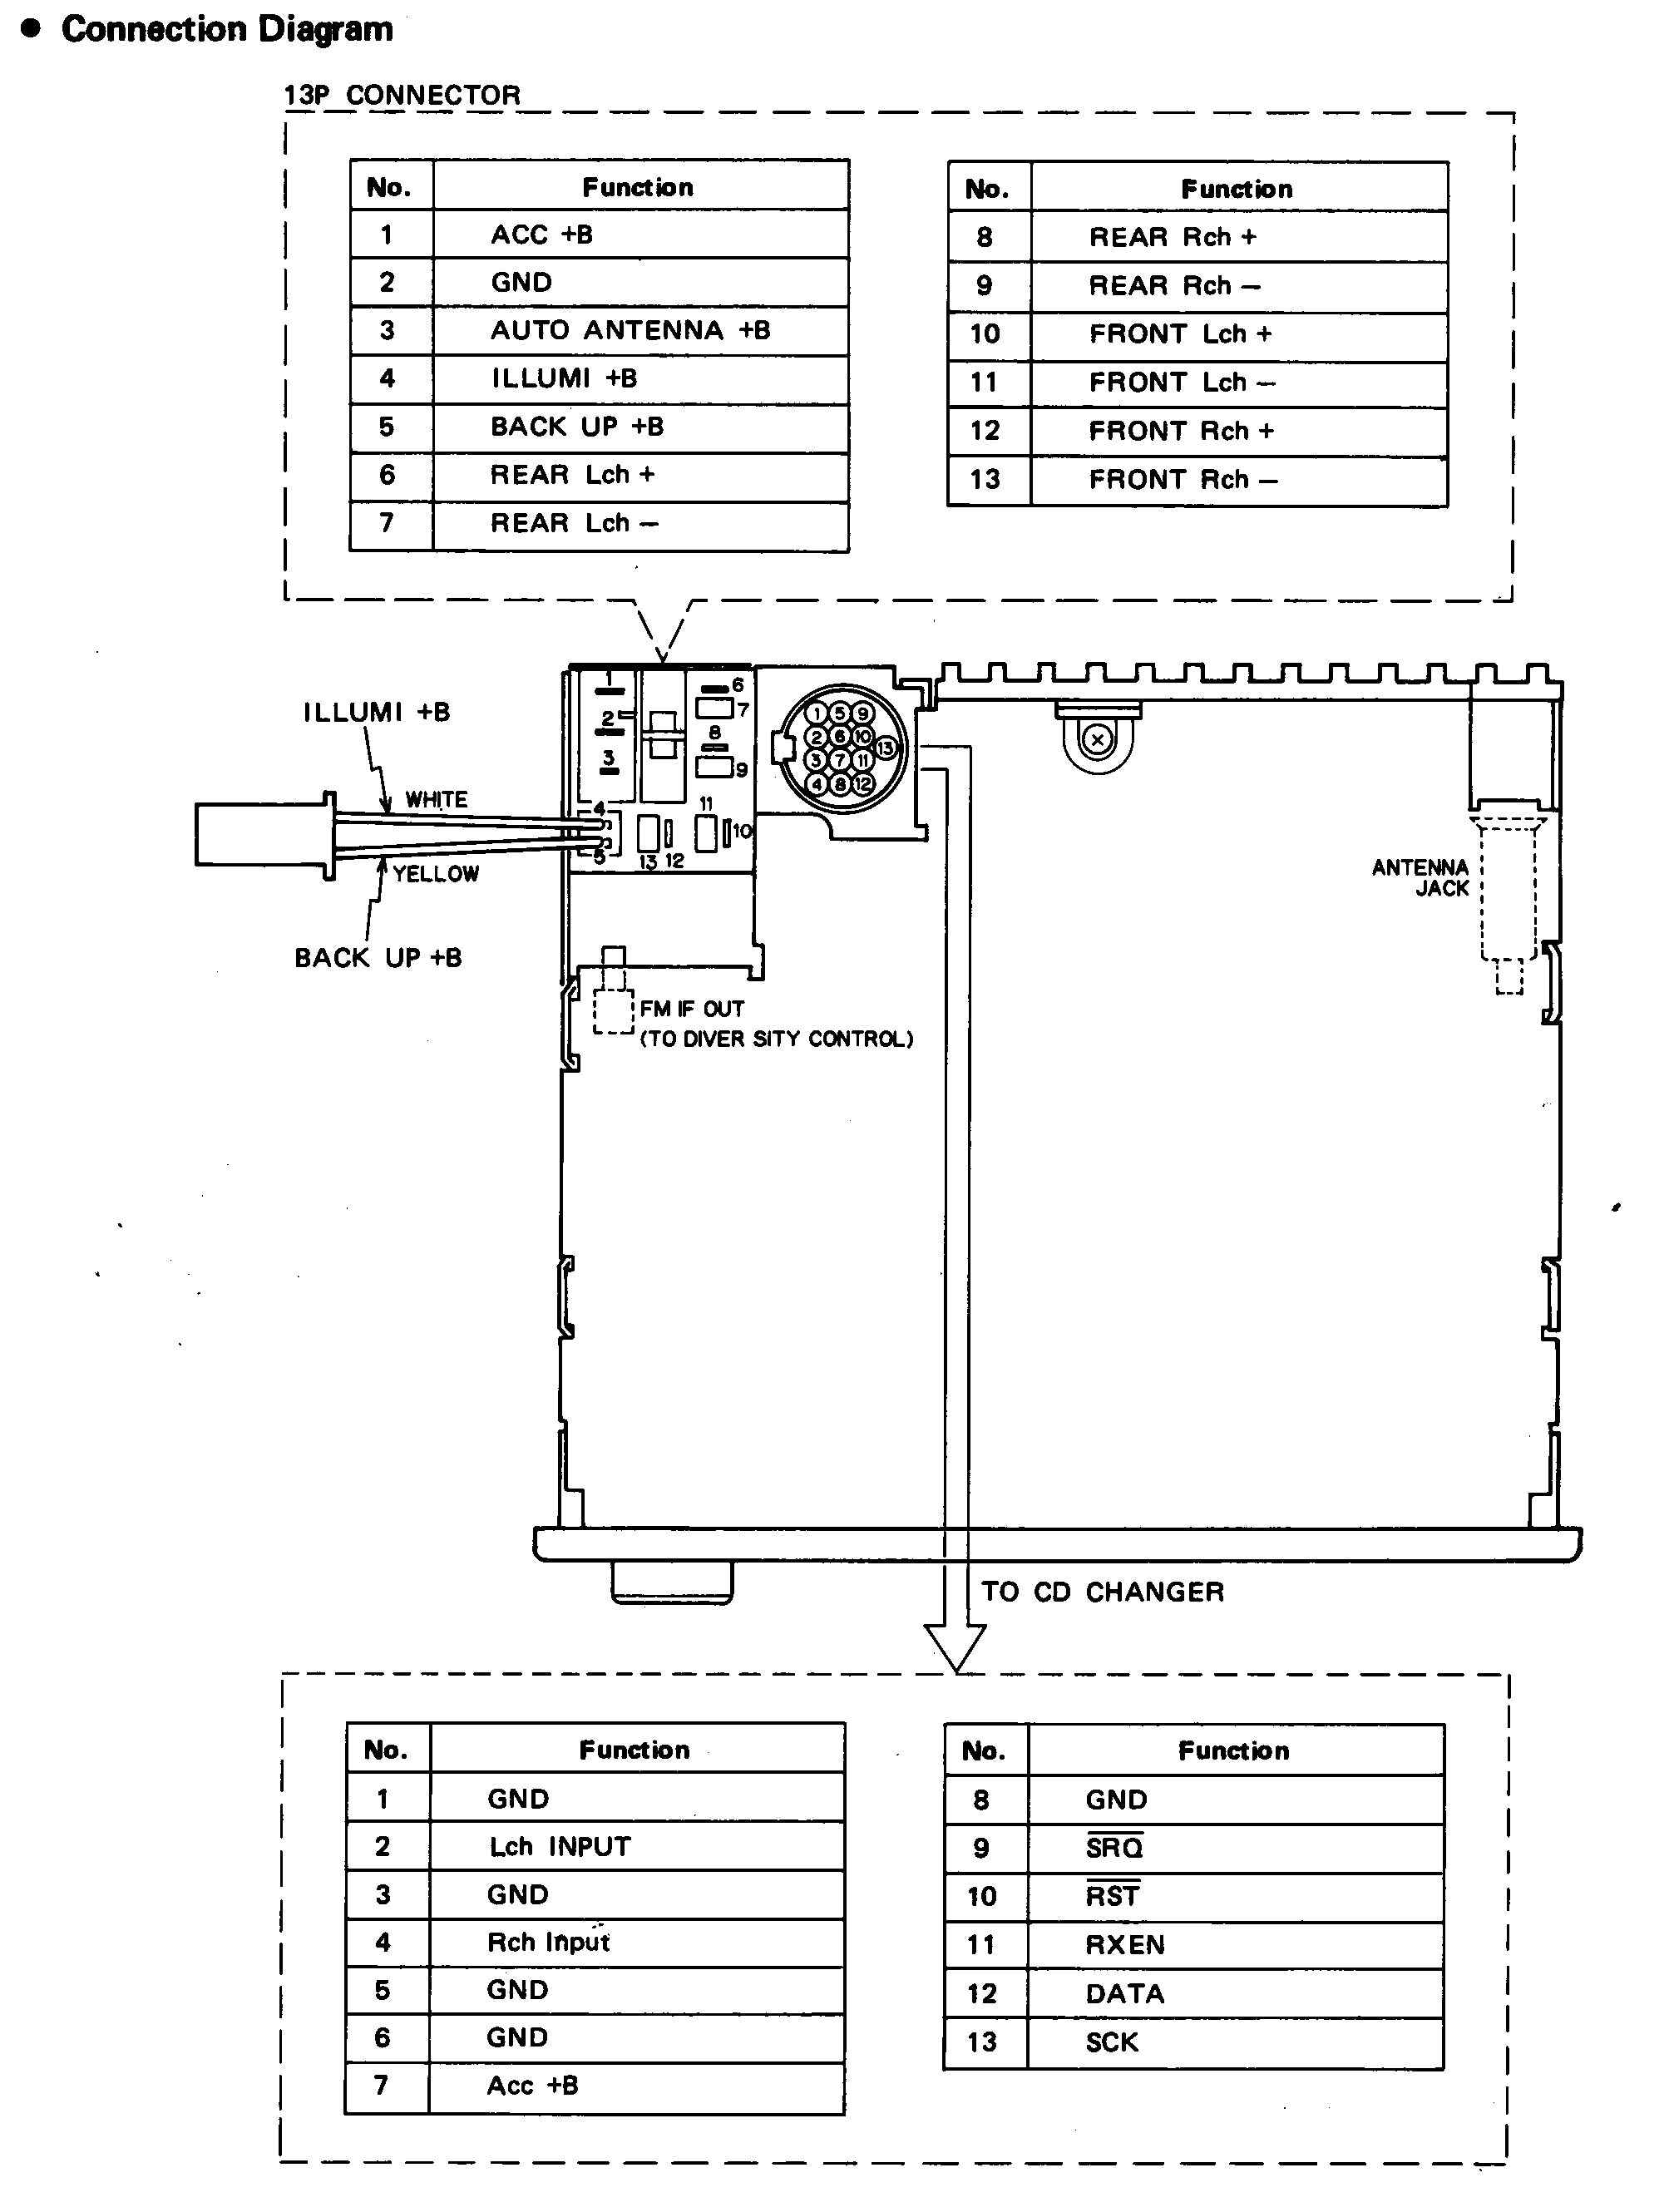 Nitro Bmw 2 Way Wiring Diagram Not Lossing Smoke Alarm 1989 Todays Rh 12 8 4 1813weddingbarn Com